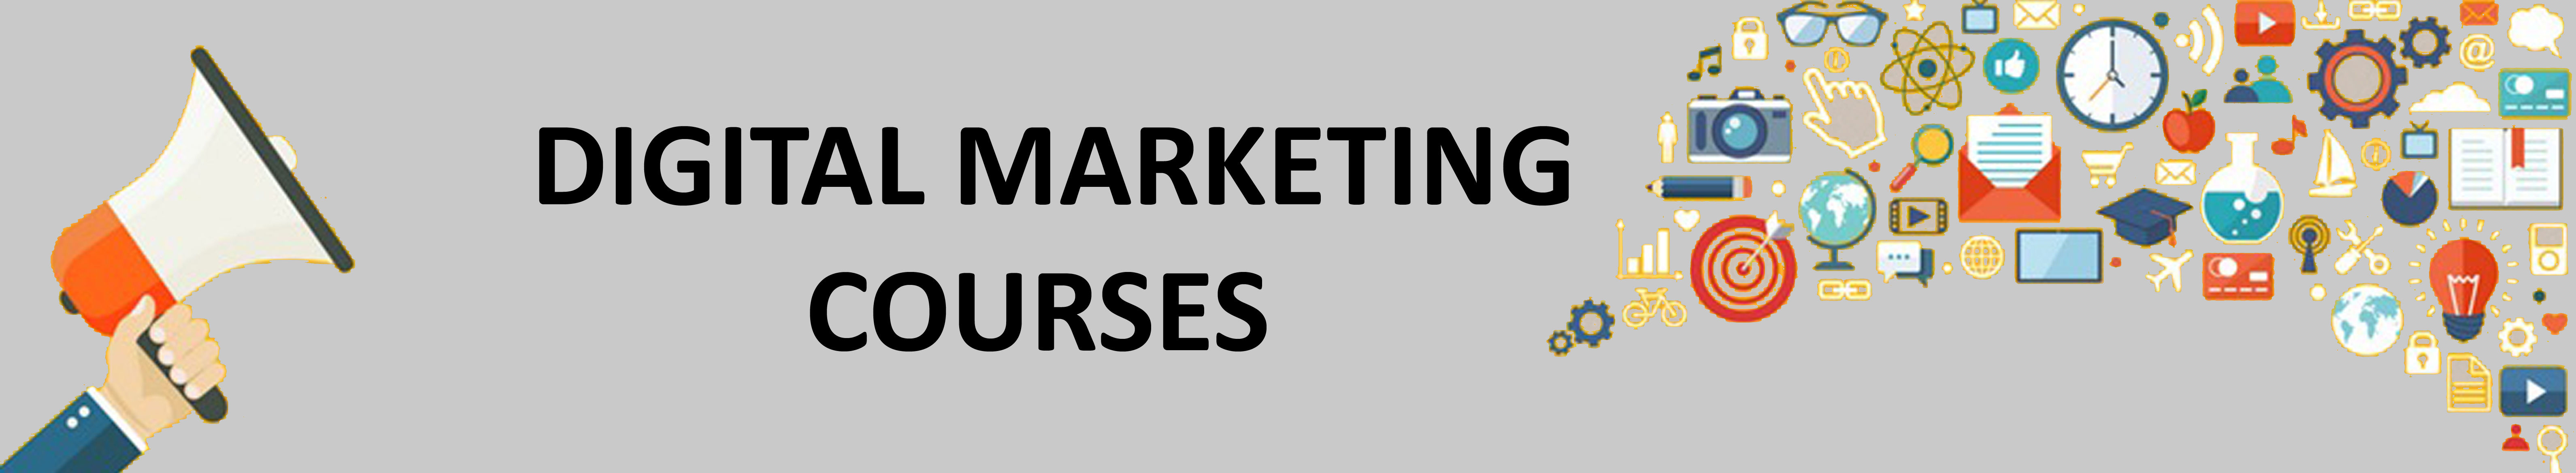 digital marketing course in nehru place kalkaji govindpuri